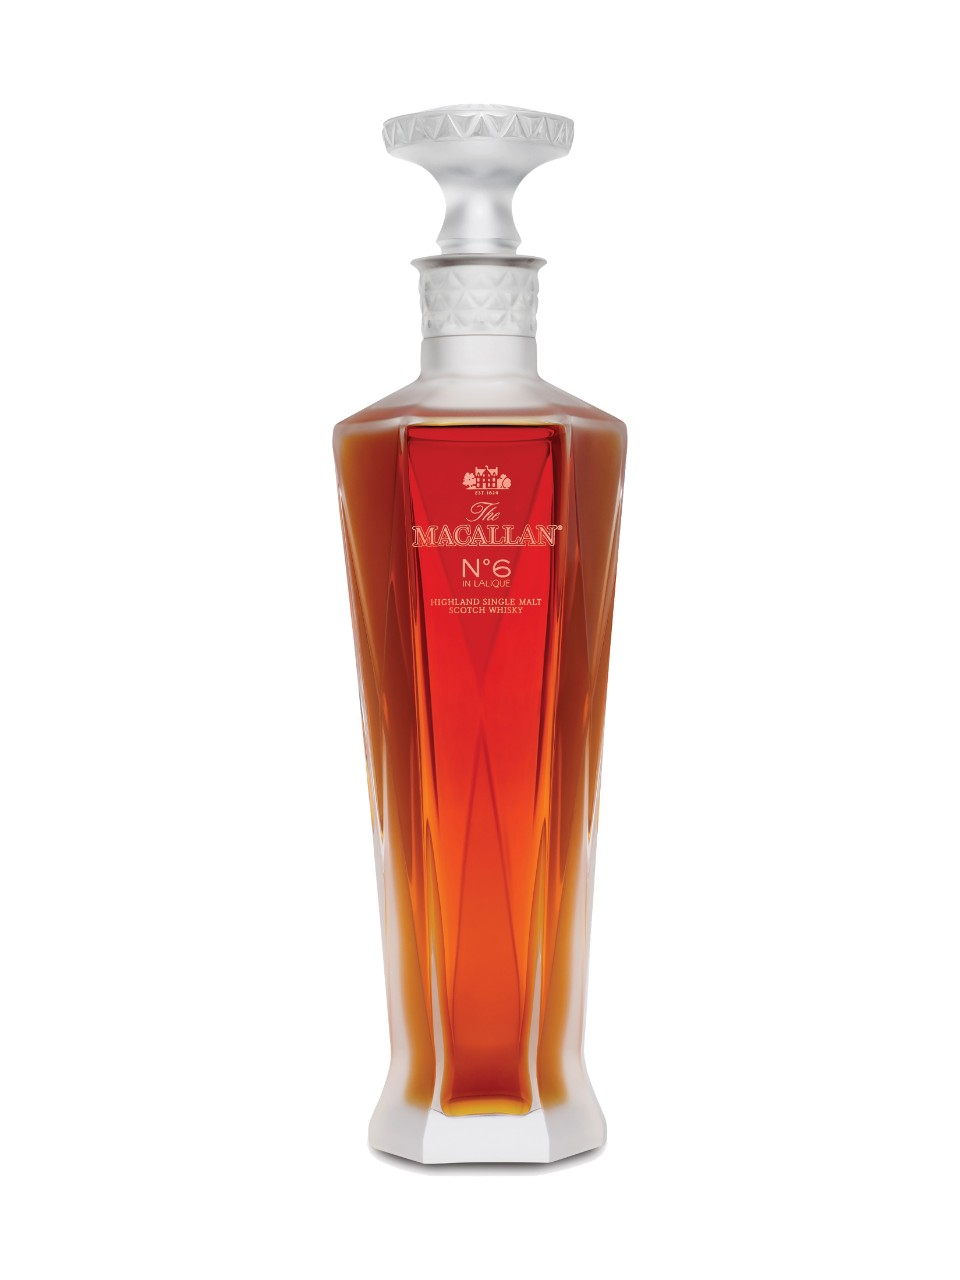 Image pour Single Malt des Highlands The Macallan 1824 Series No. 6 à partir de LCBO